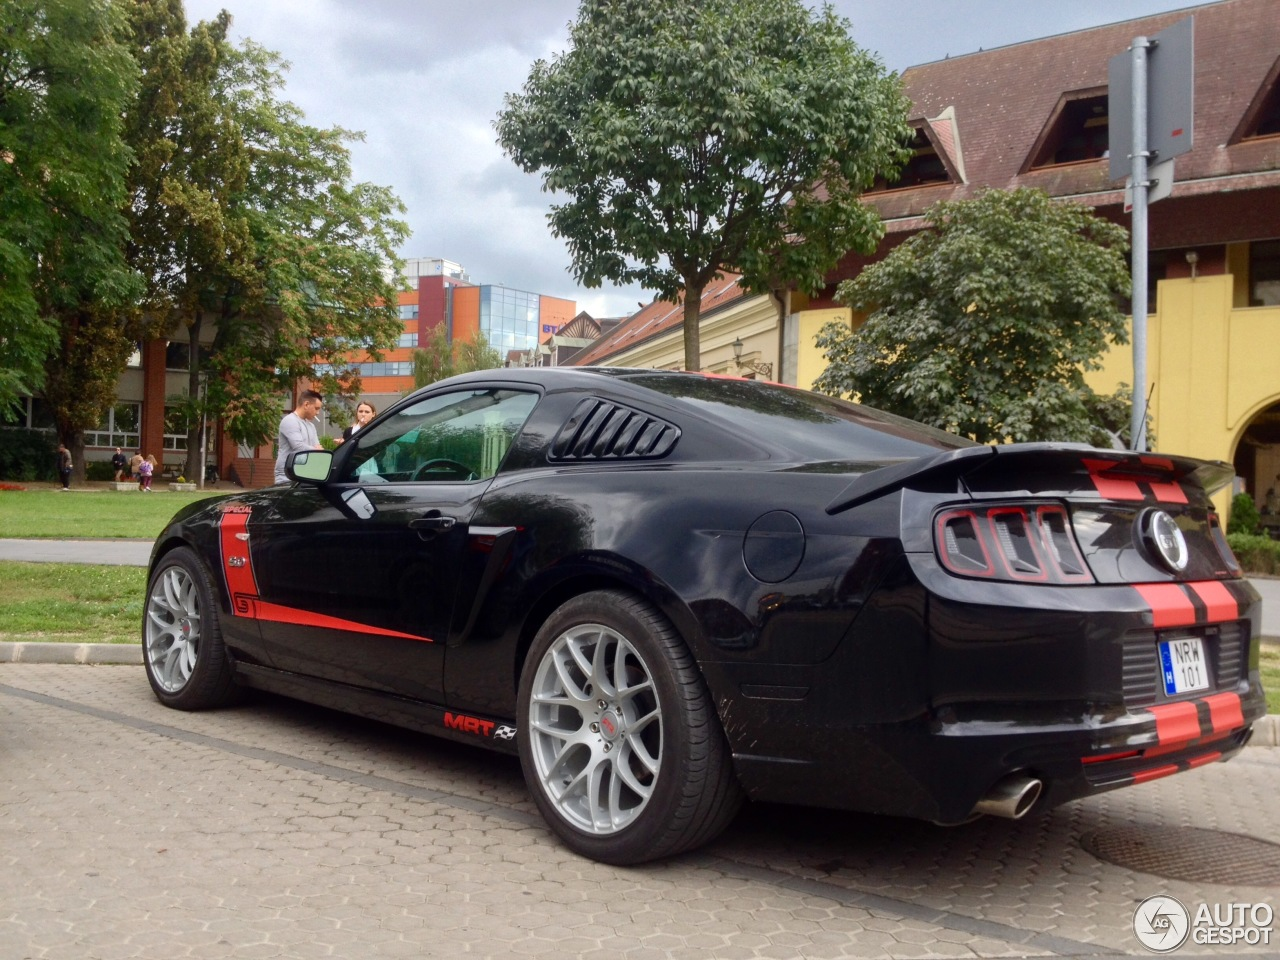 Ford Mustang Roush Special Mrt 22 September 2016